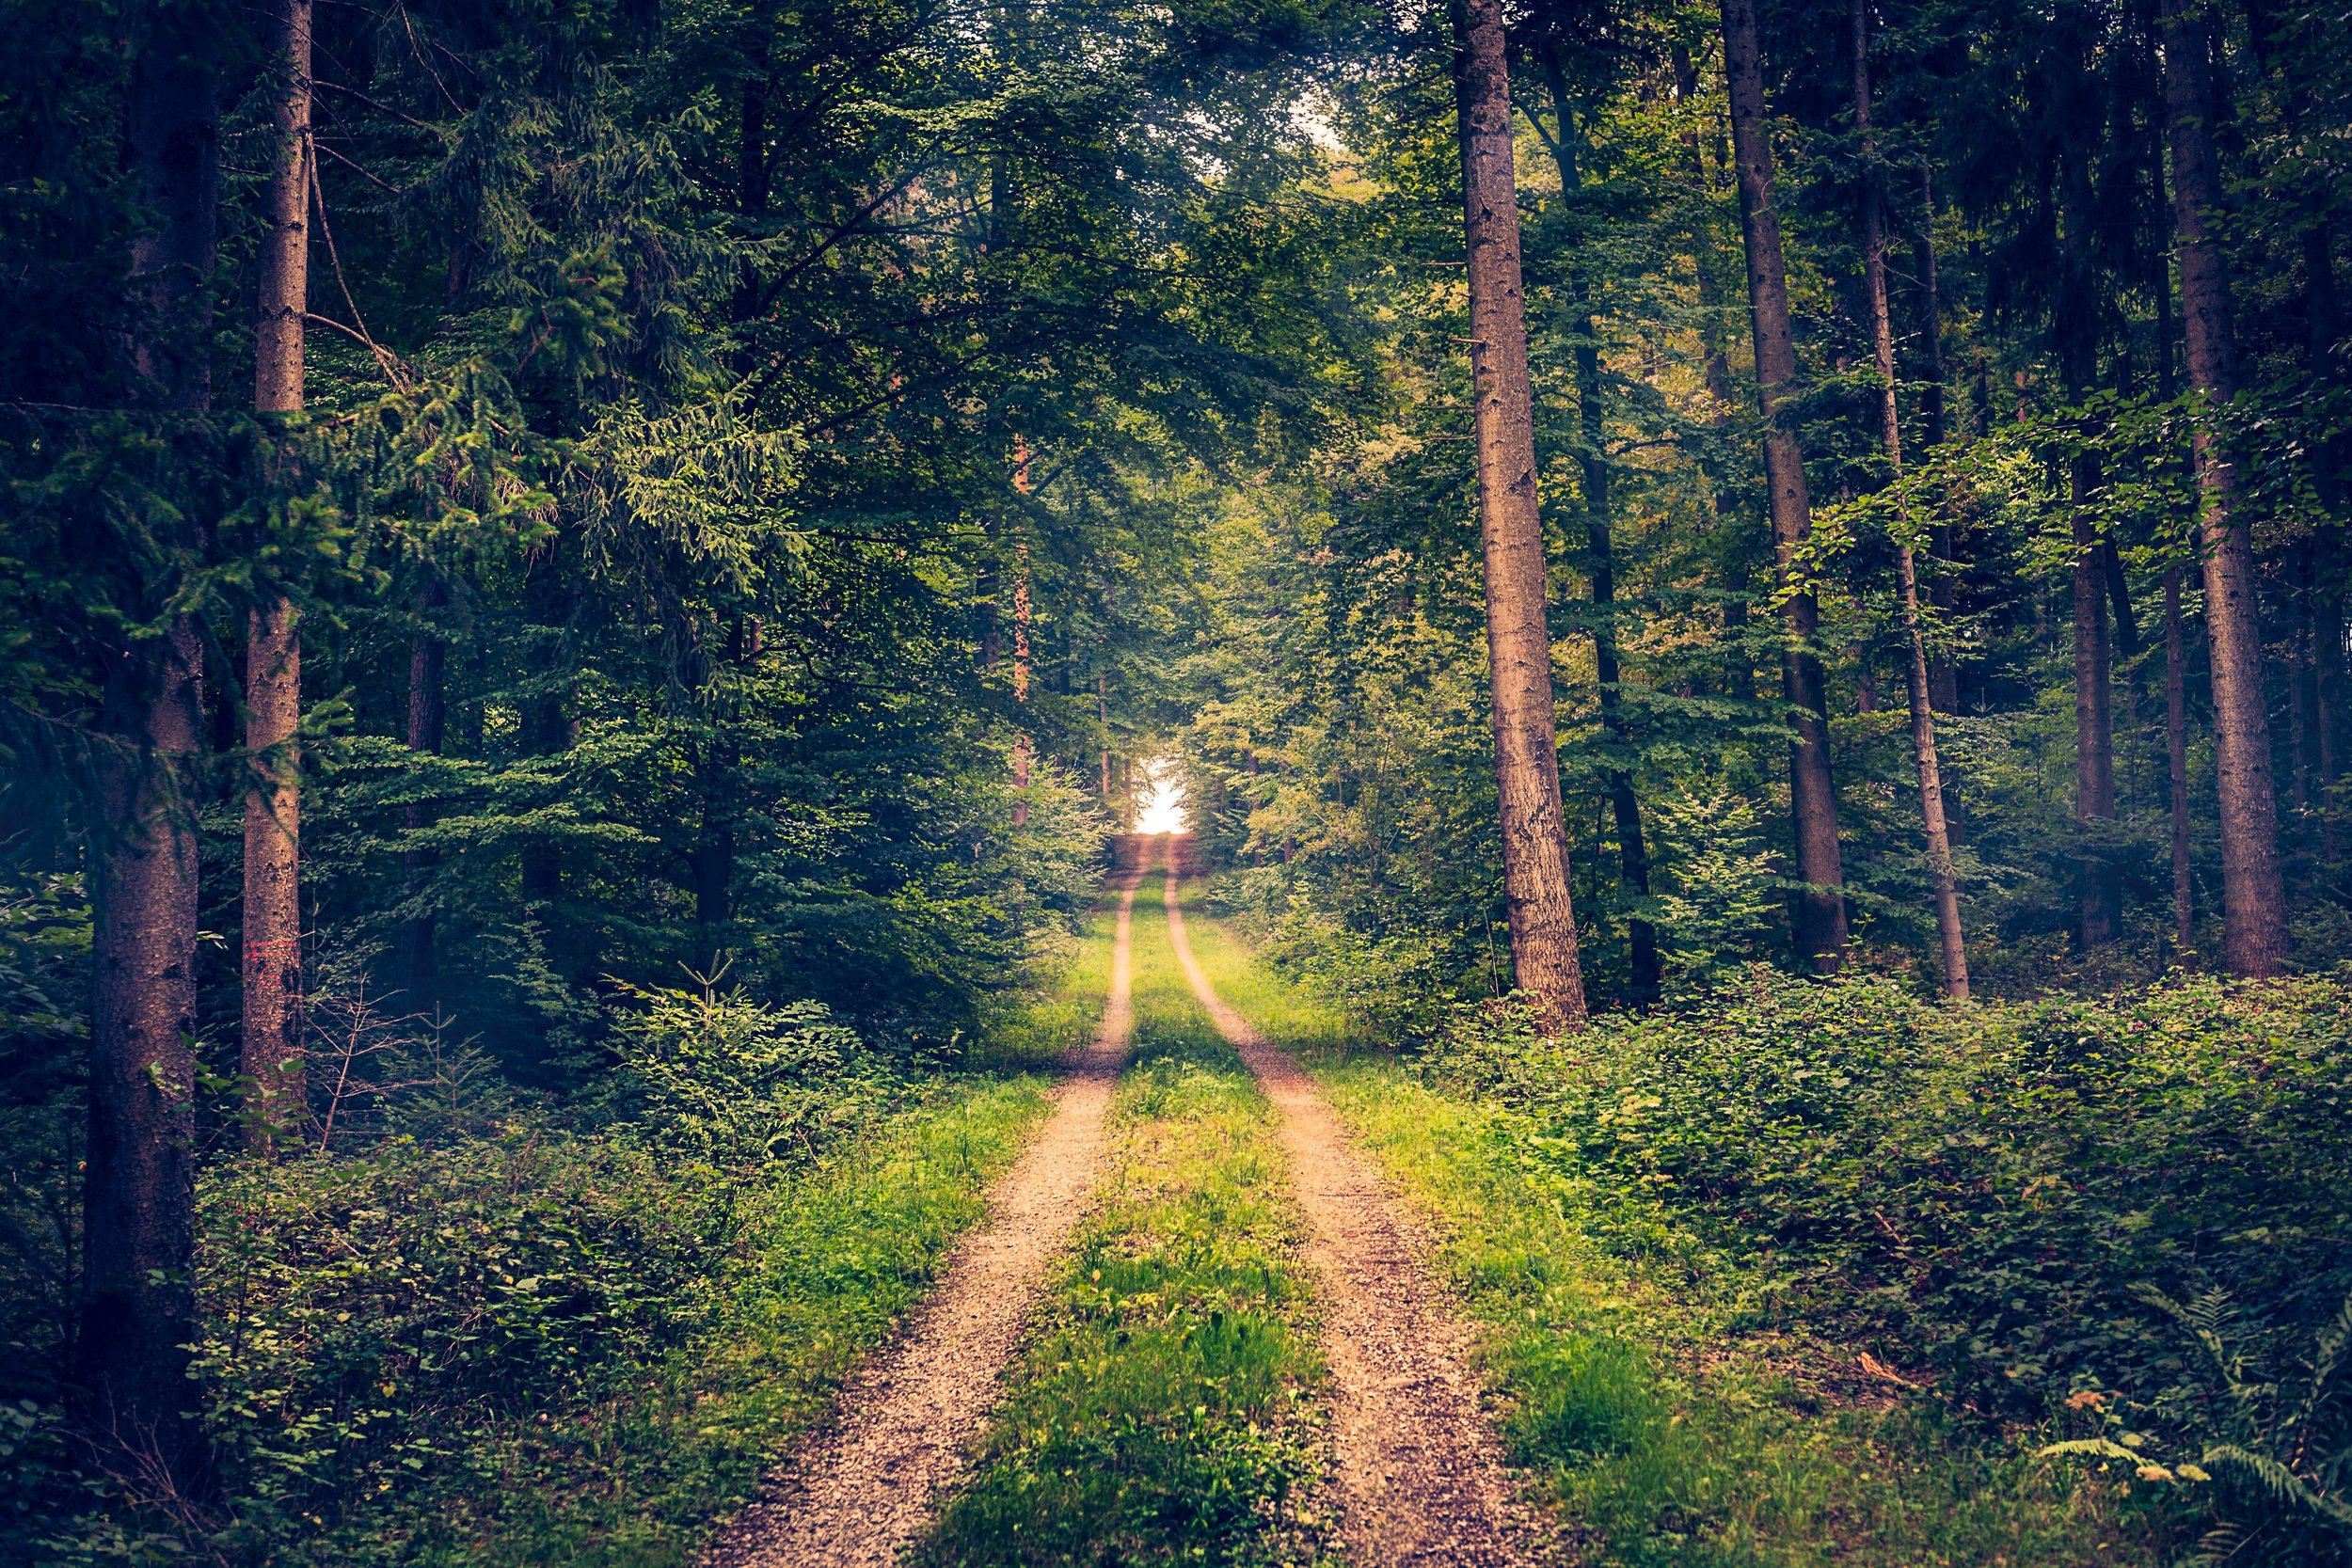 Your guide to forest bathing - Learn to take a step away from stress and towards the presence of nature, using mindfulness and meditation to feel peace while surrounded by wild earth.Utne Reader, June 2018